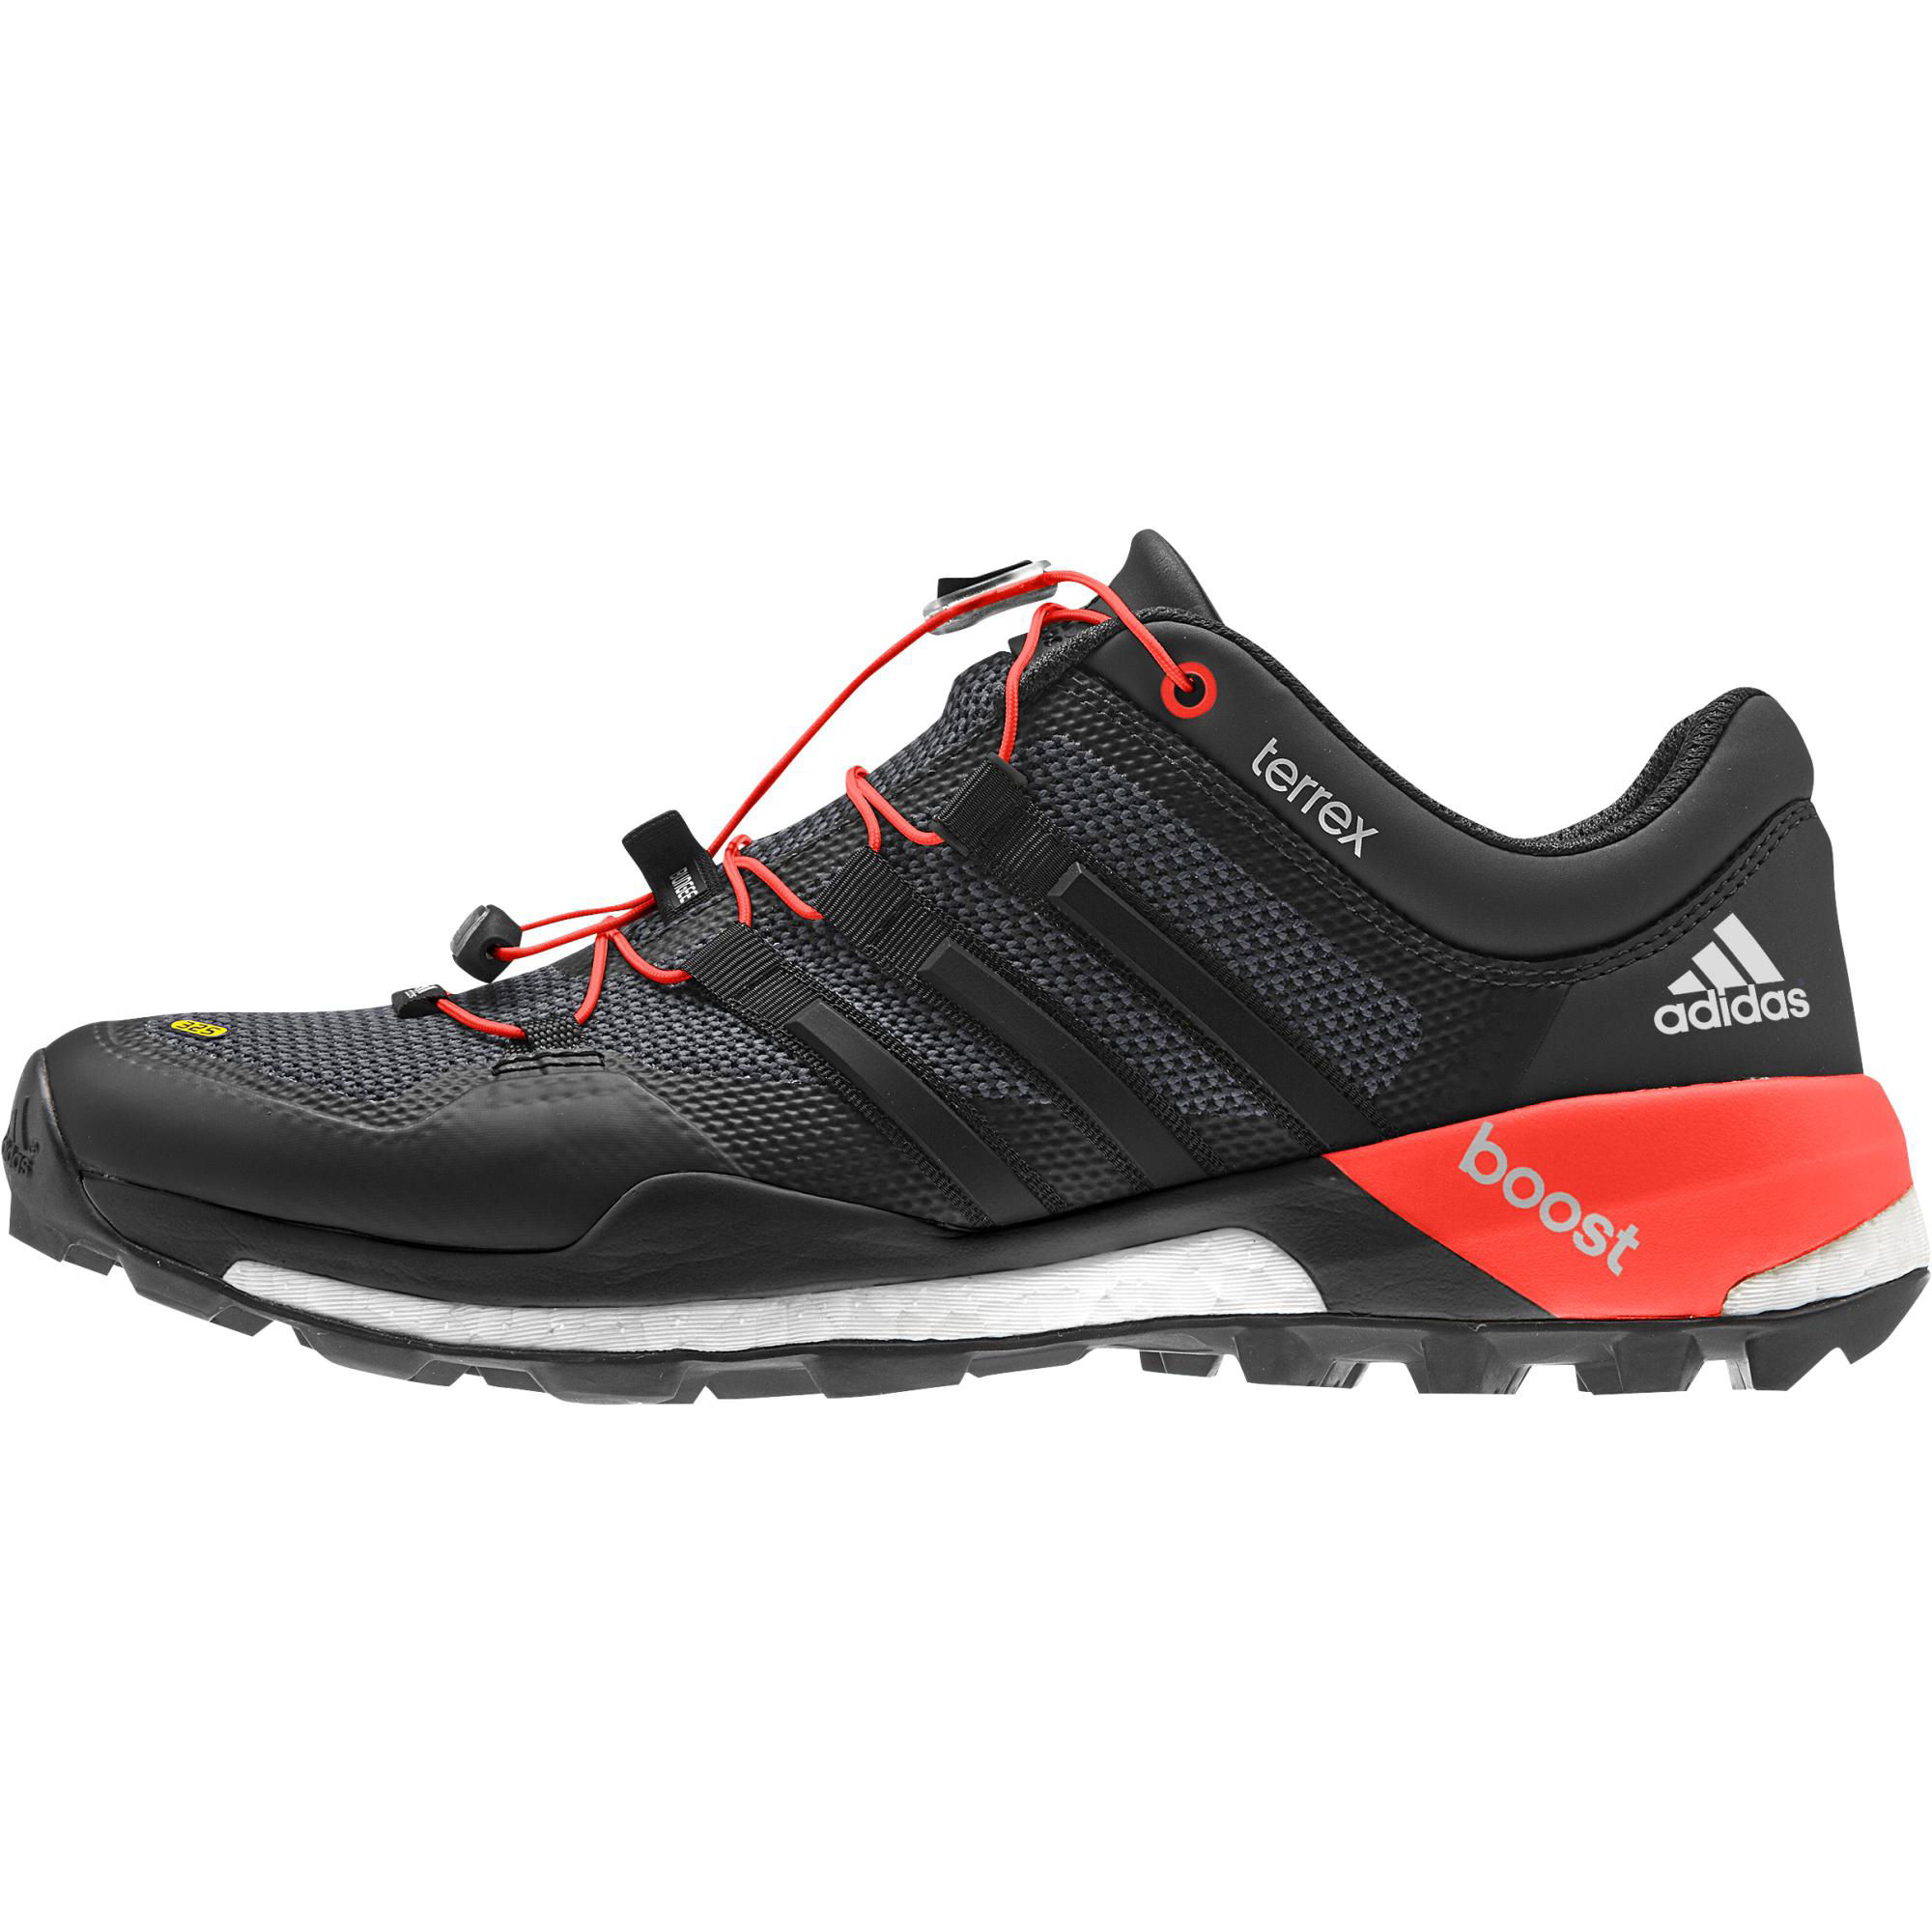 Adidas Boost Terrex Shoes Price